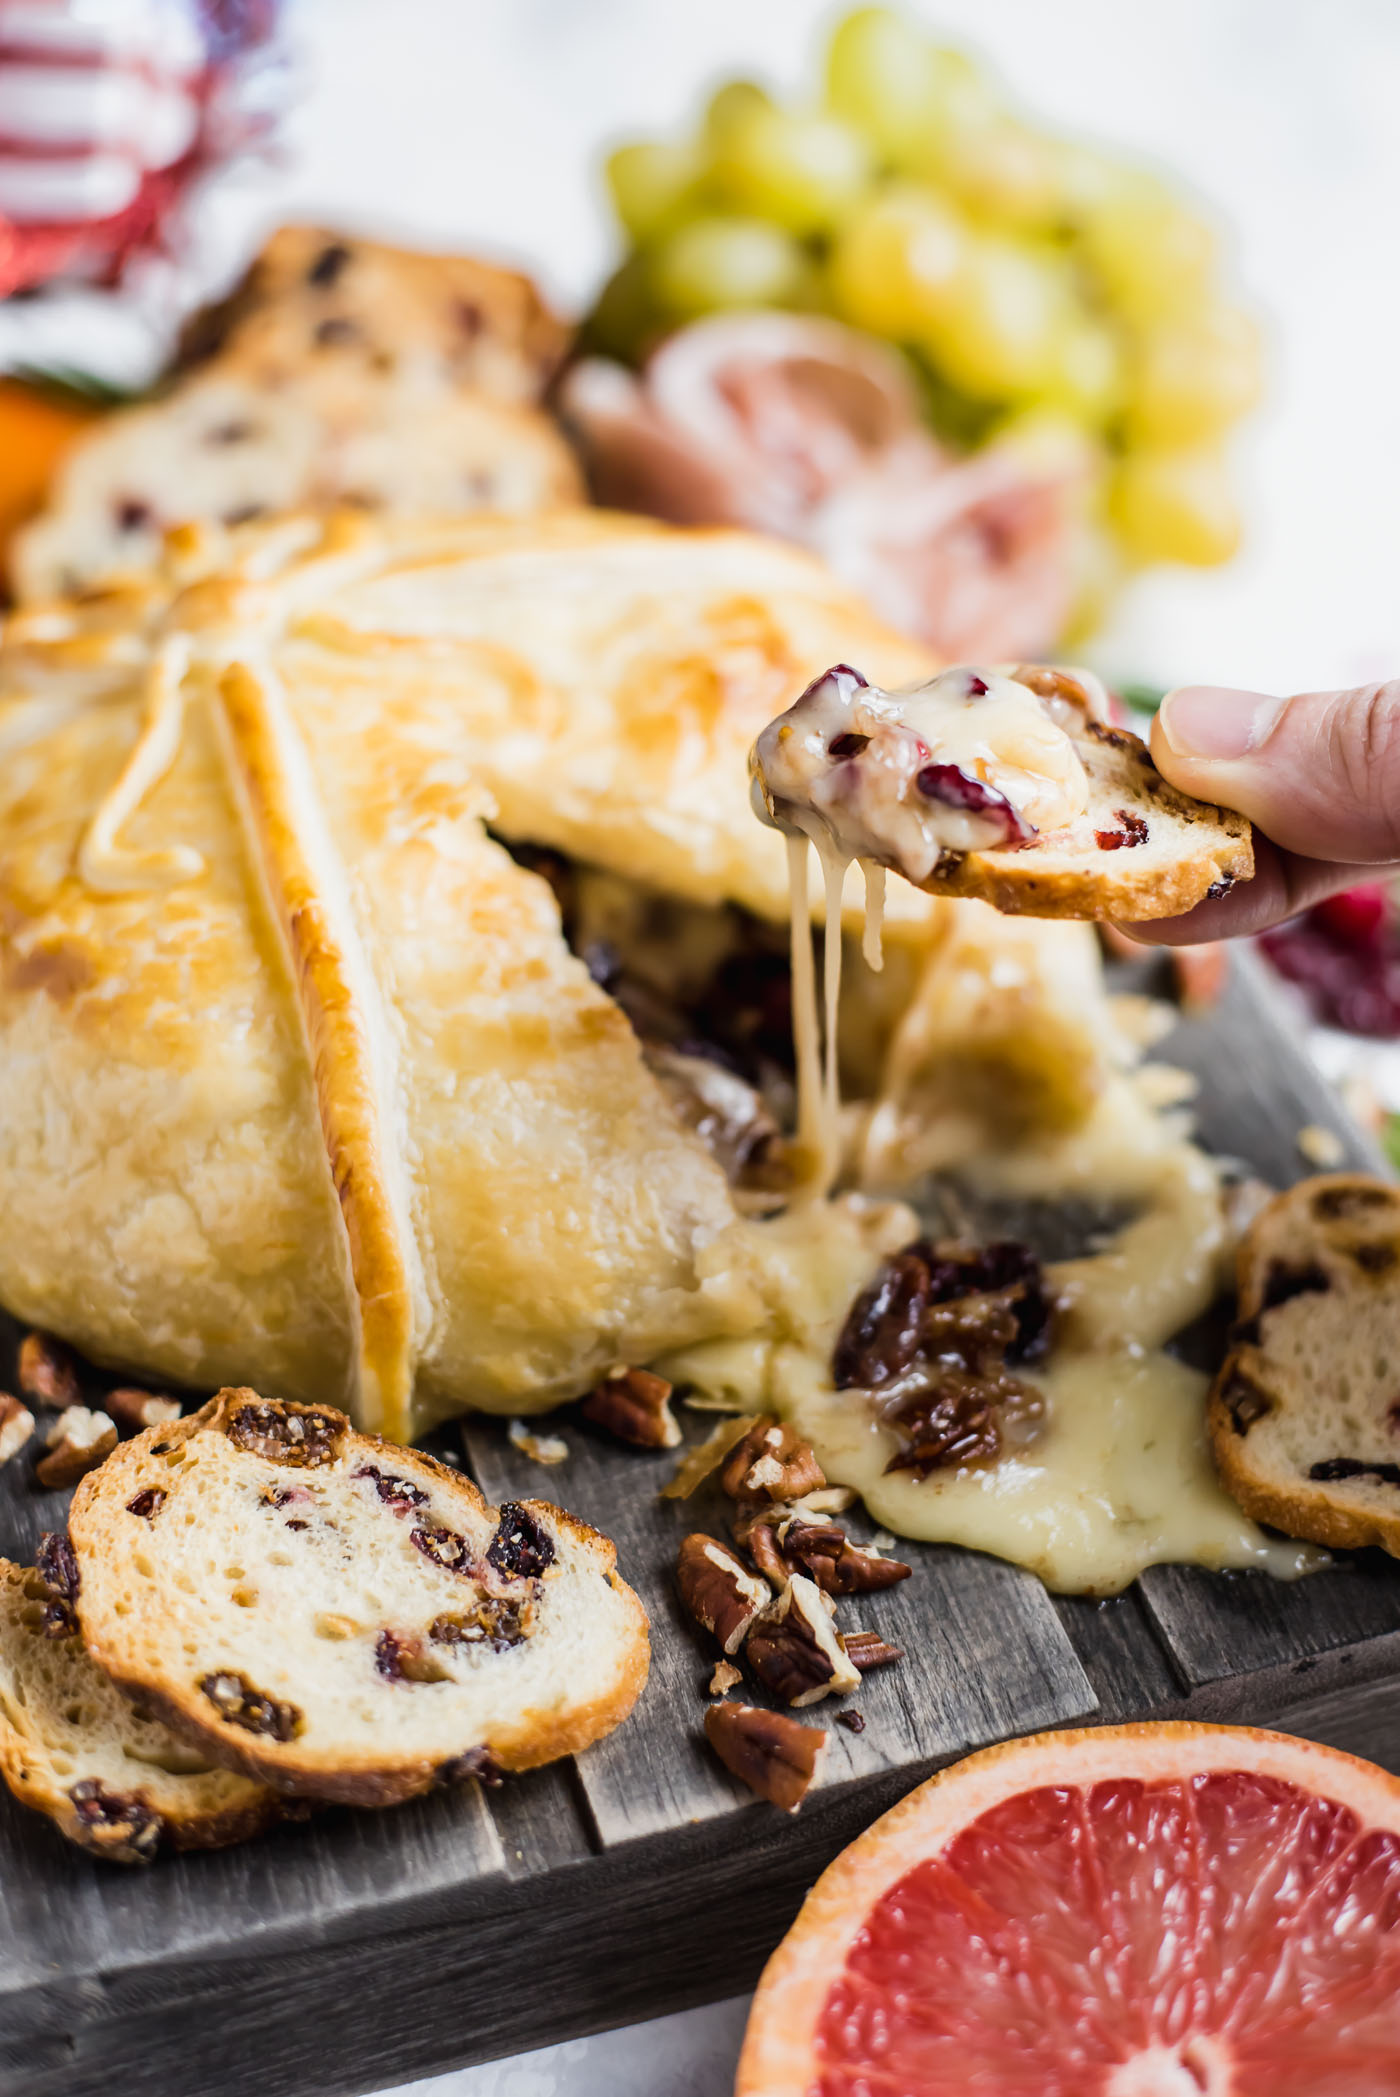 Cranberry Pecan Stuffed Baked Brie